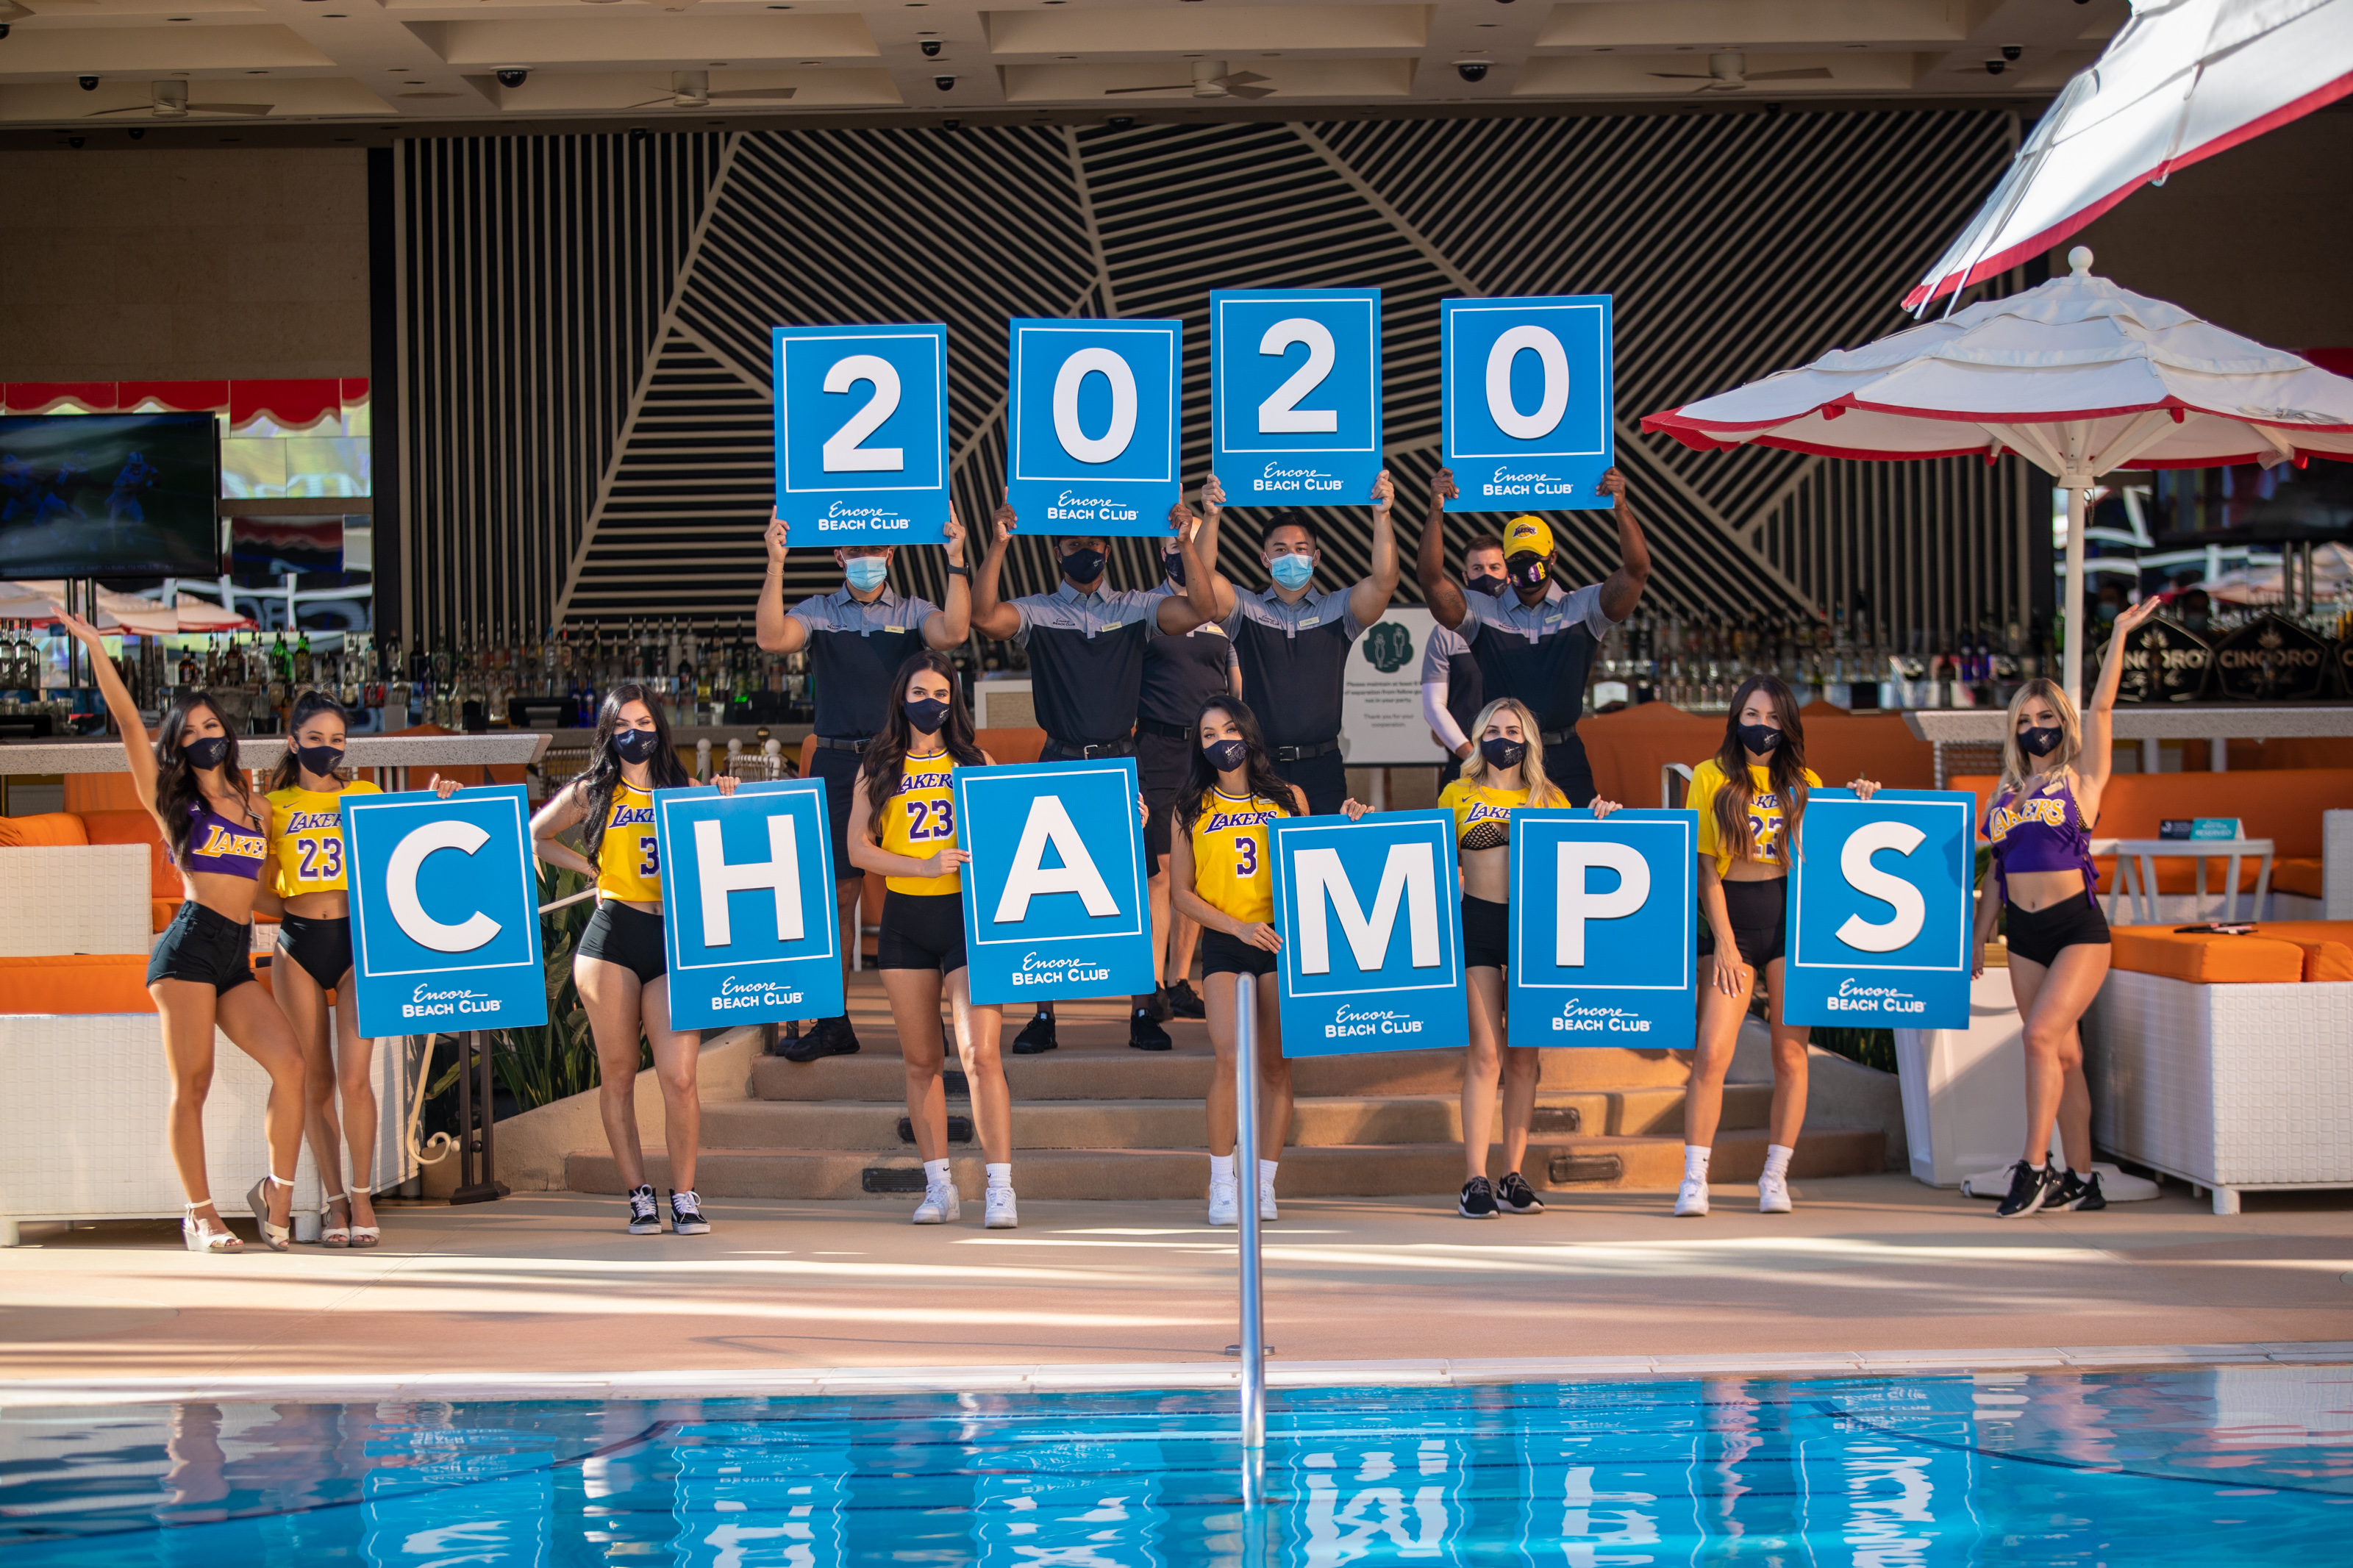 """Women wearing Los Angeles Lakers attire hold numbers and letters that say """"2020 Champs"""""""